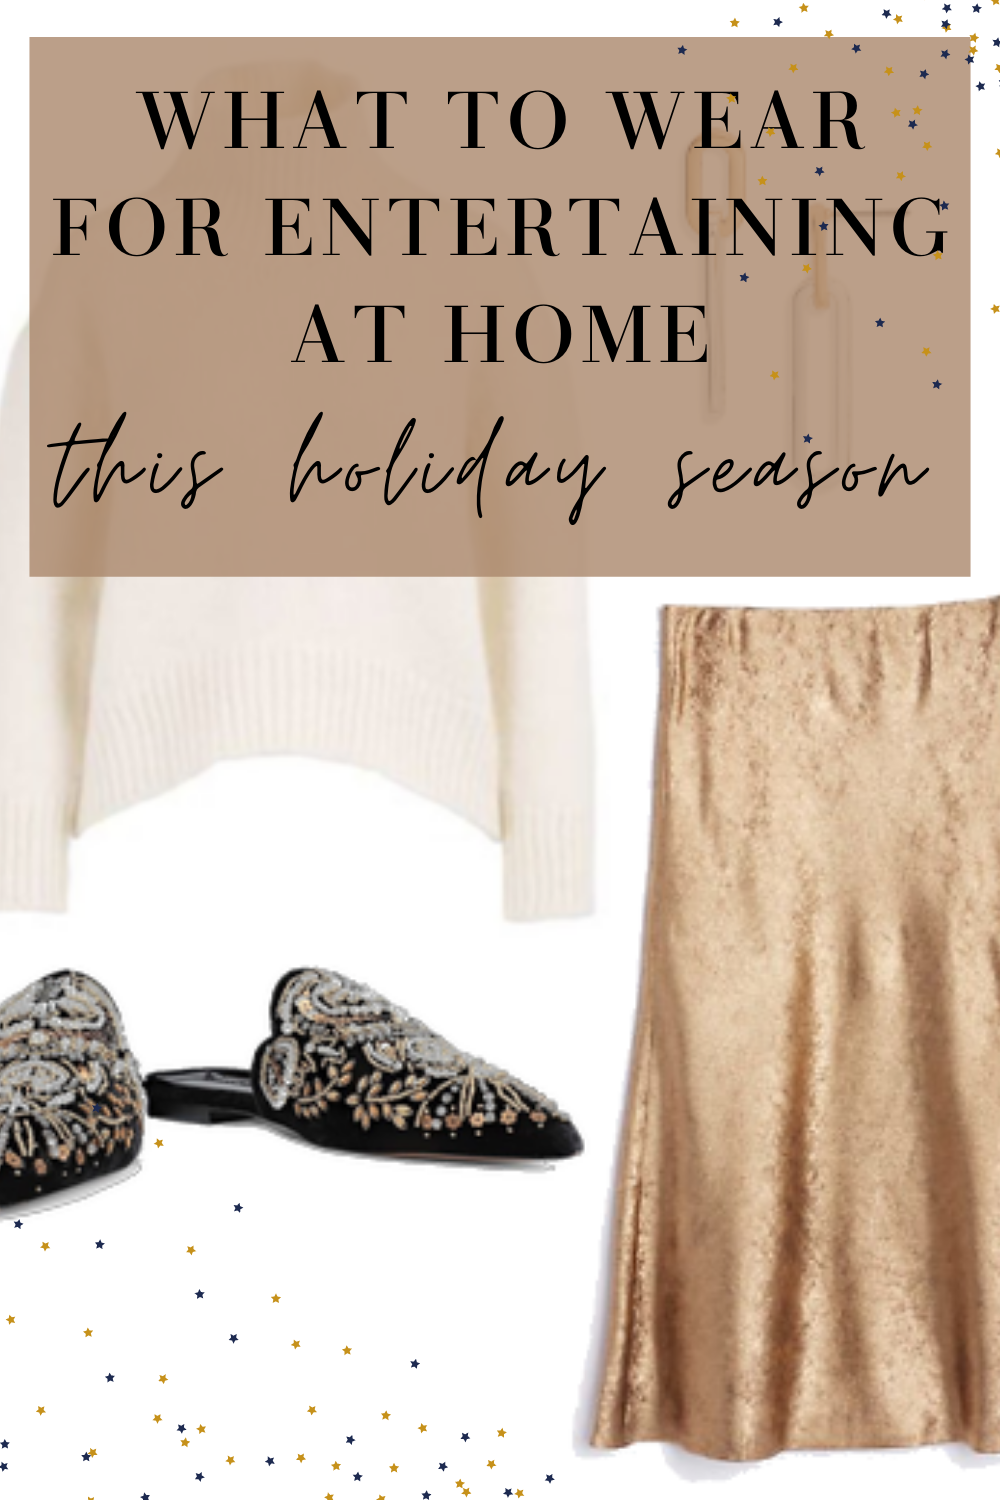 what to wear entertaining at home